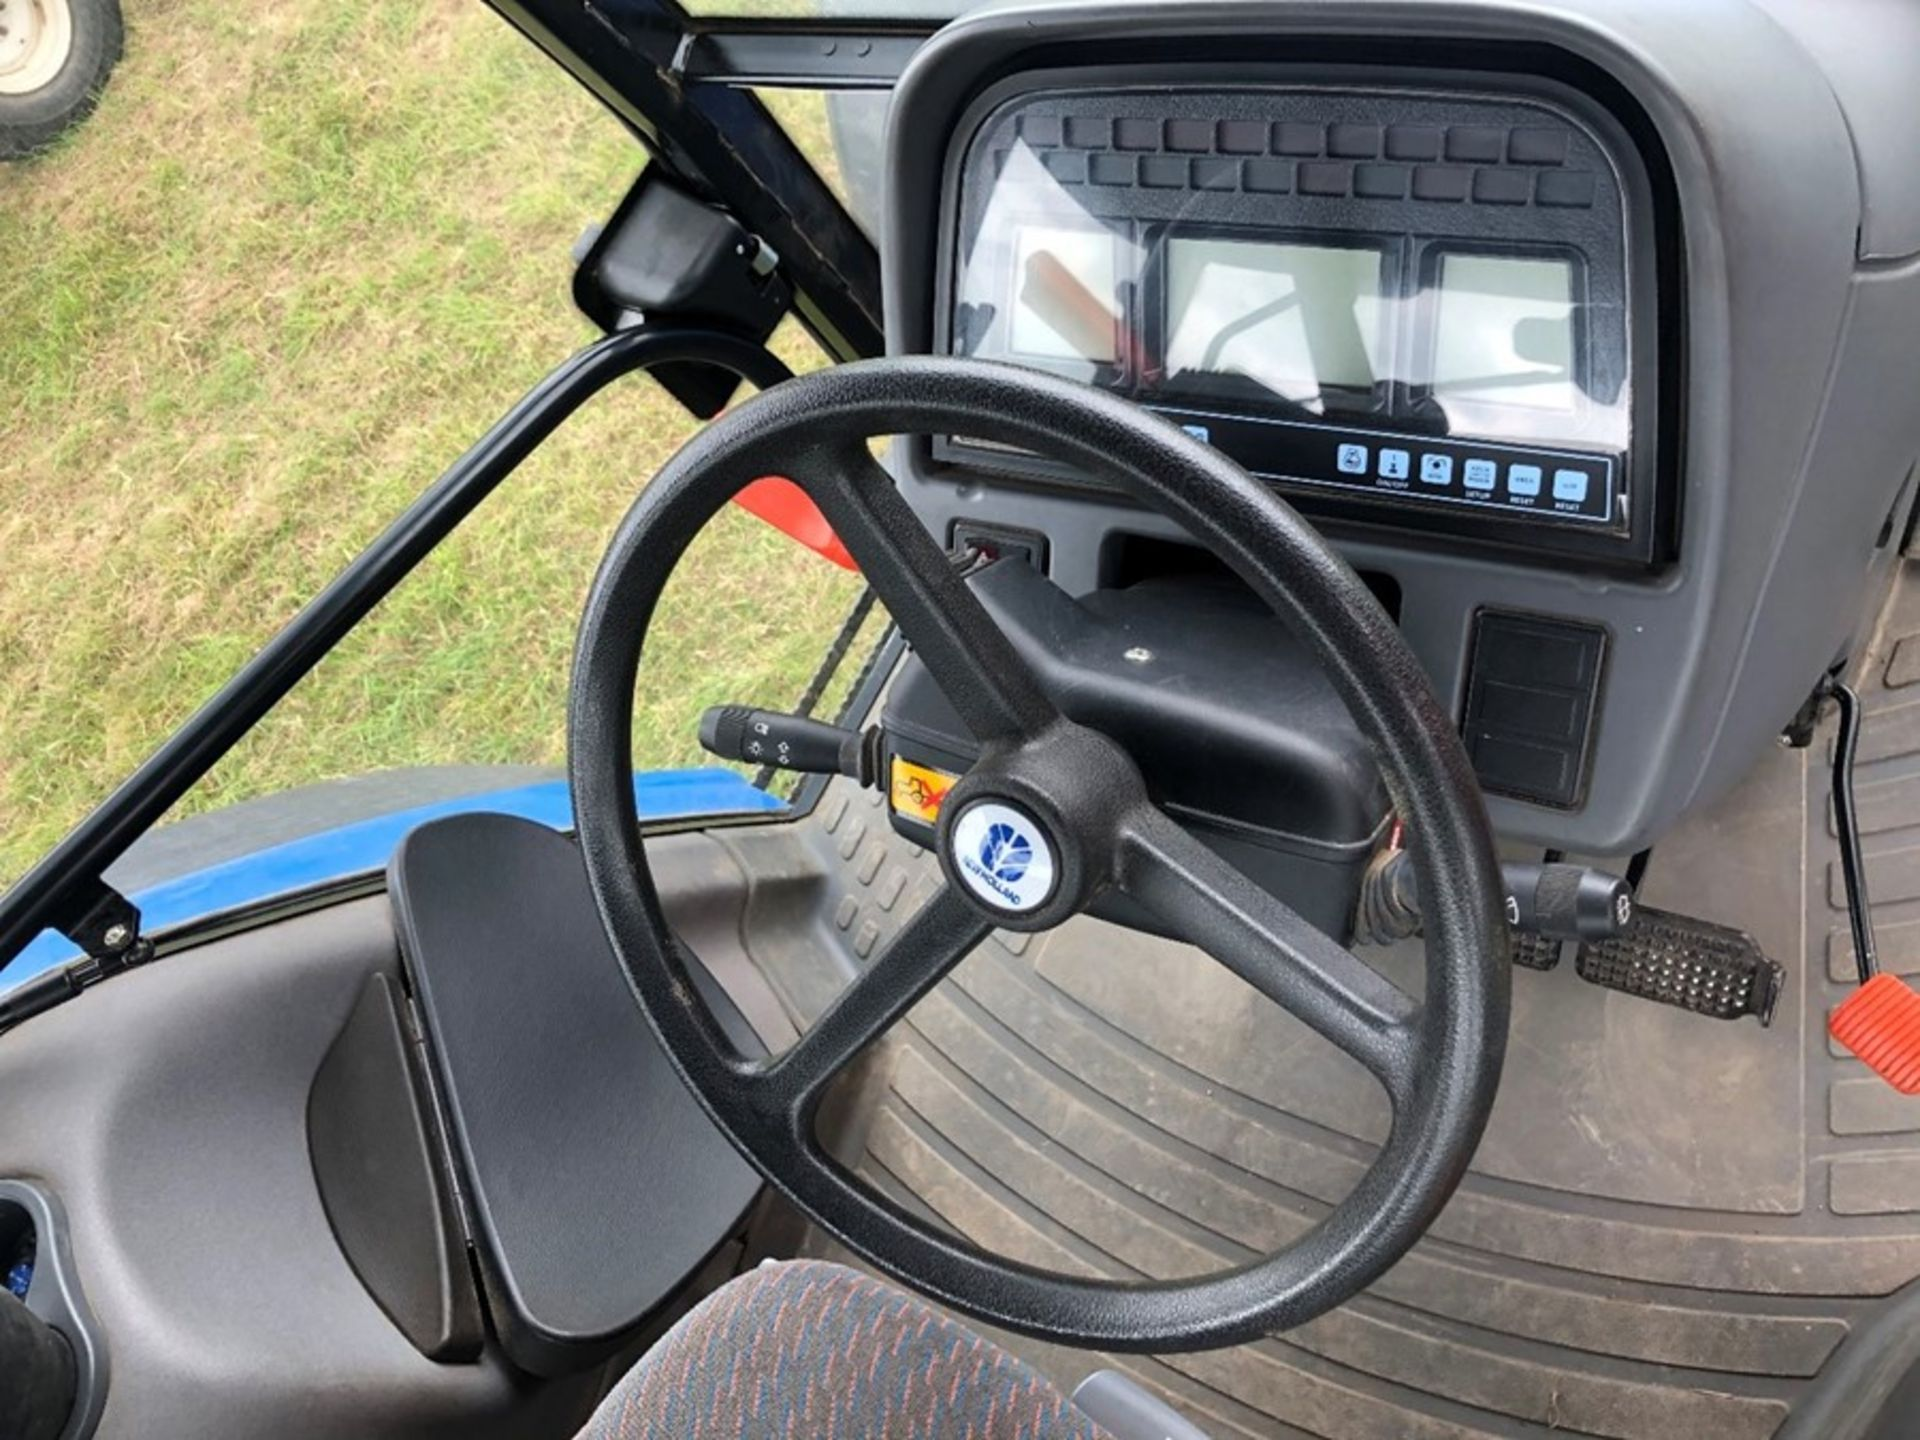 (07) New Holland TM 155 - Image 5 of 10